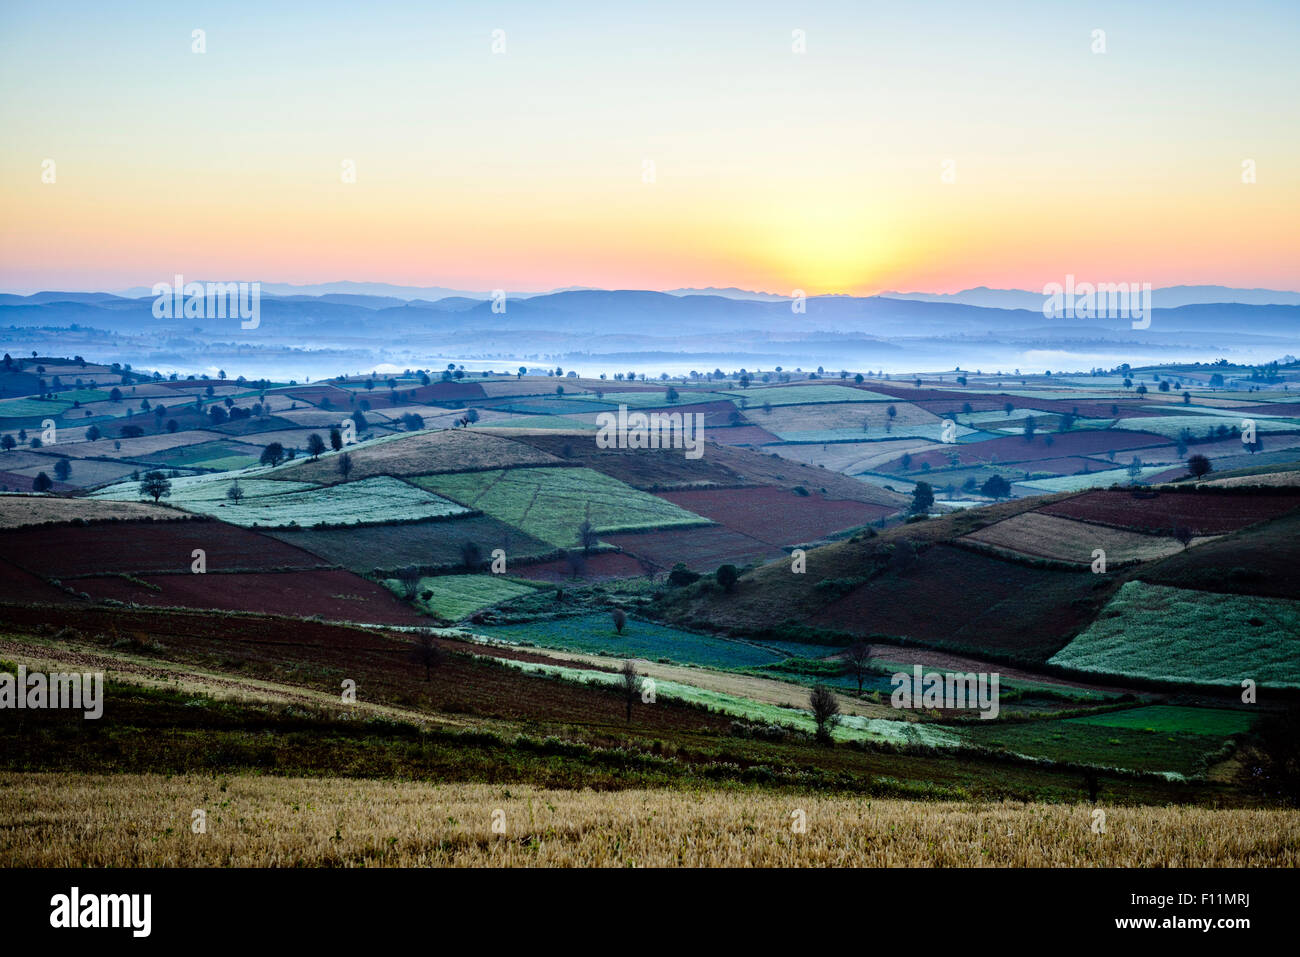 Scenic view of rural farmland, Mandalay, Myanmar - Stock Image